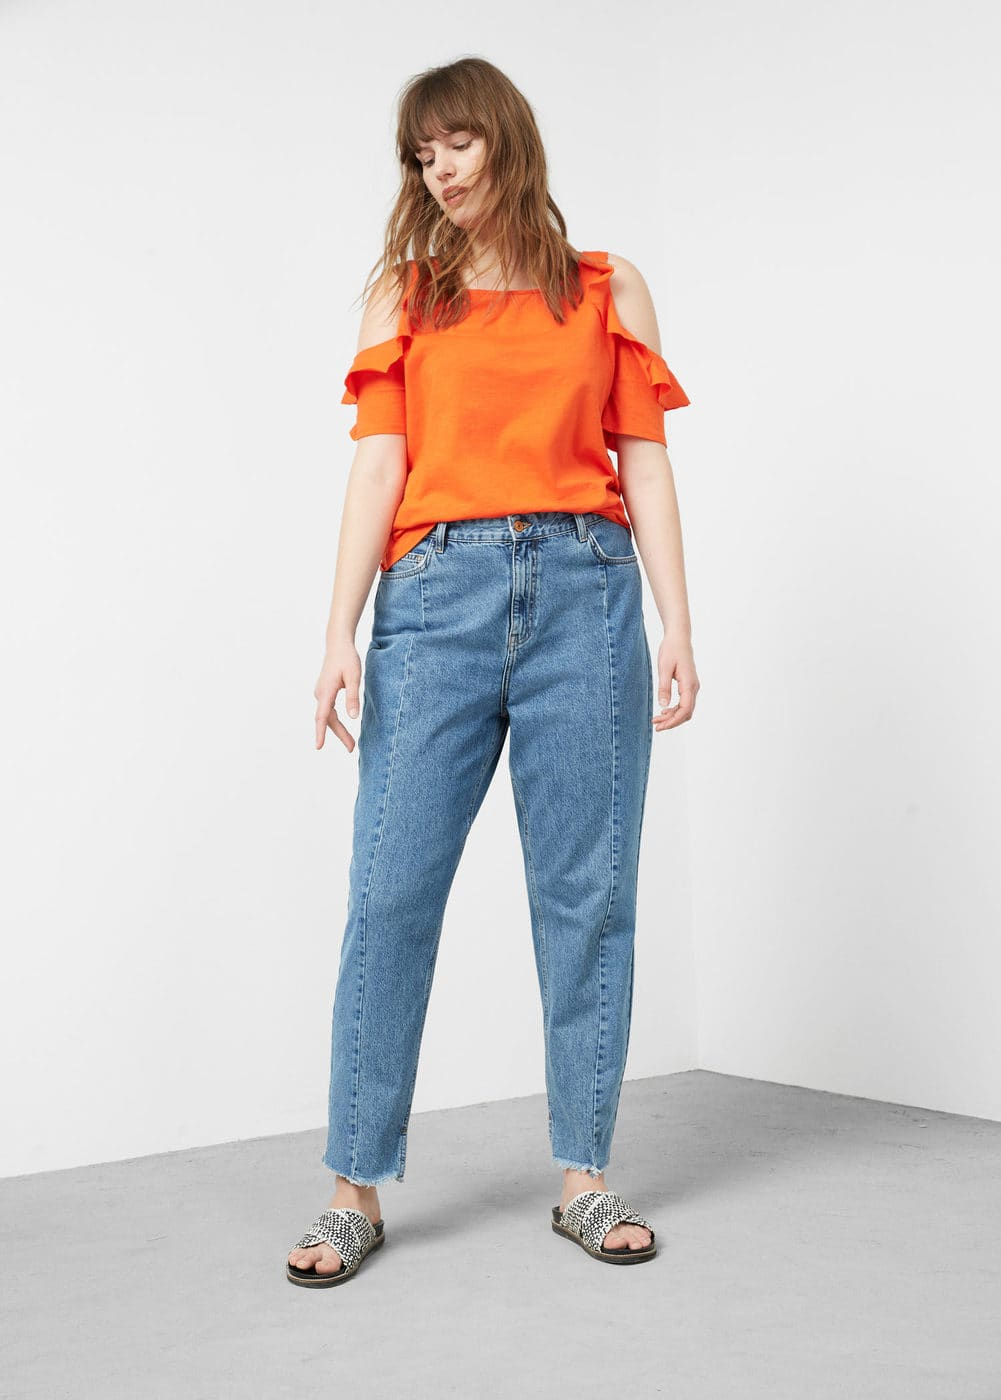 Ruffled off-shoulder t-shirt | VIOLETA BY MANGO